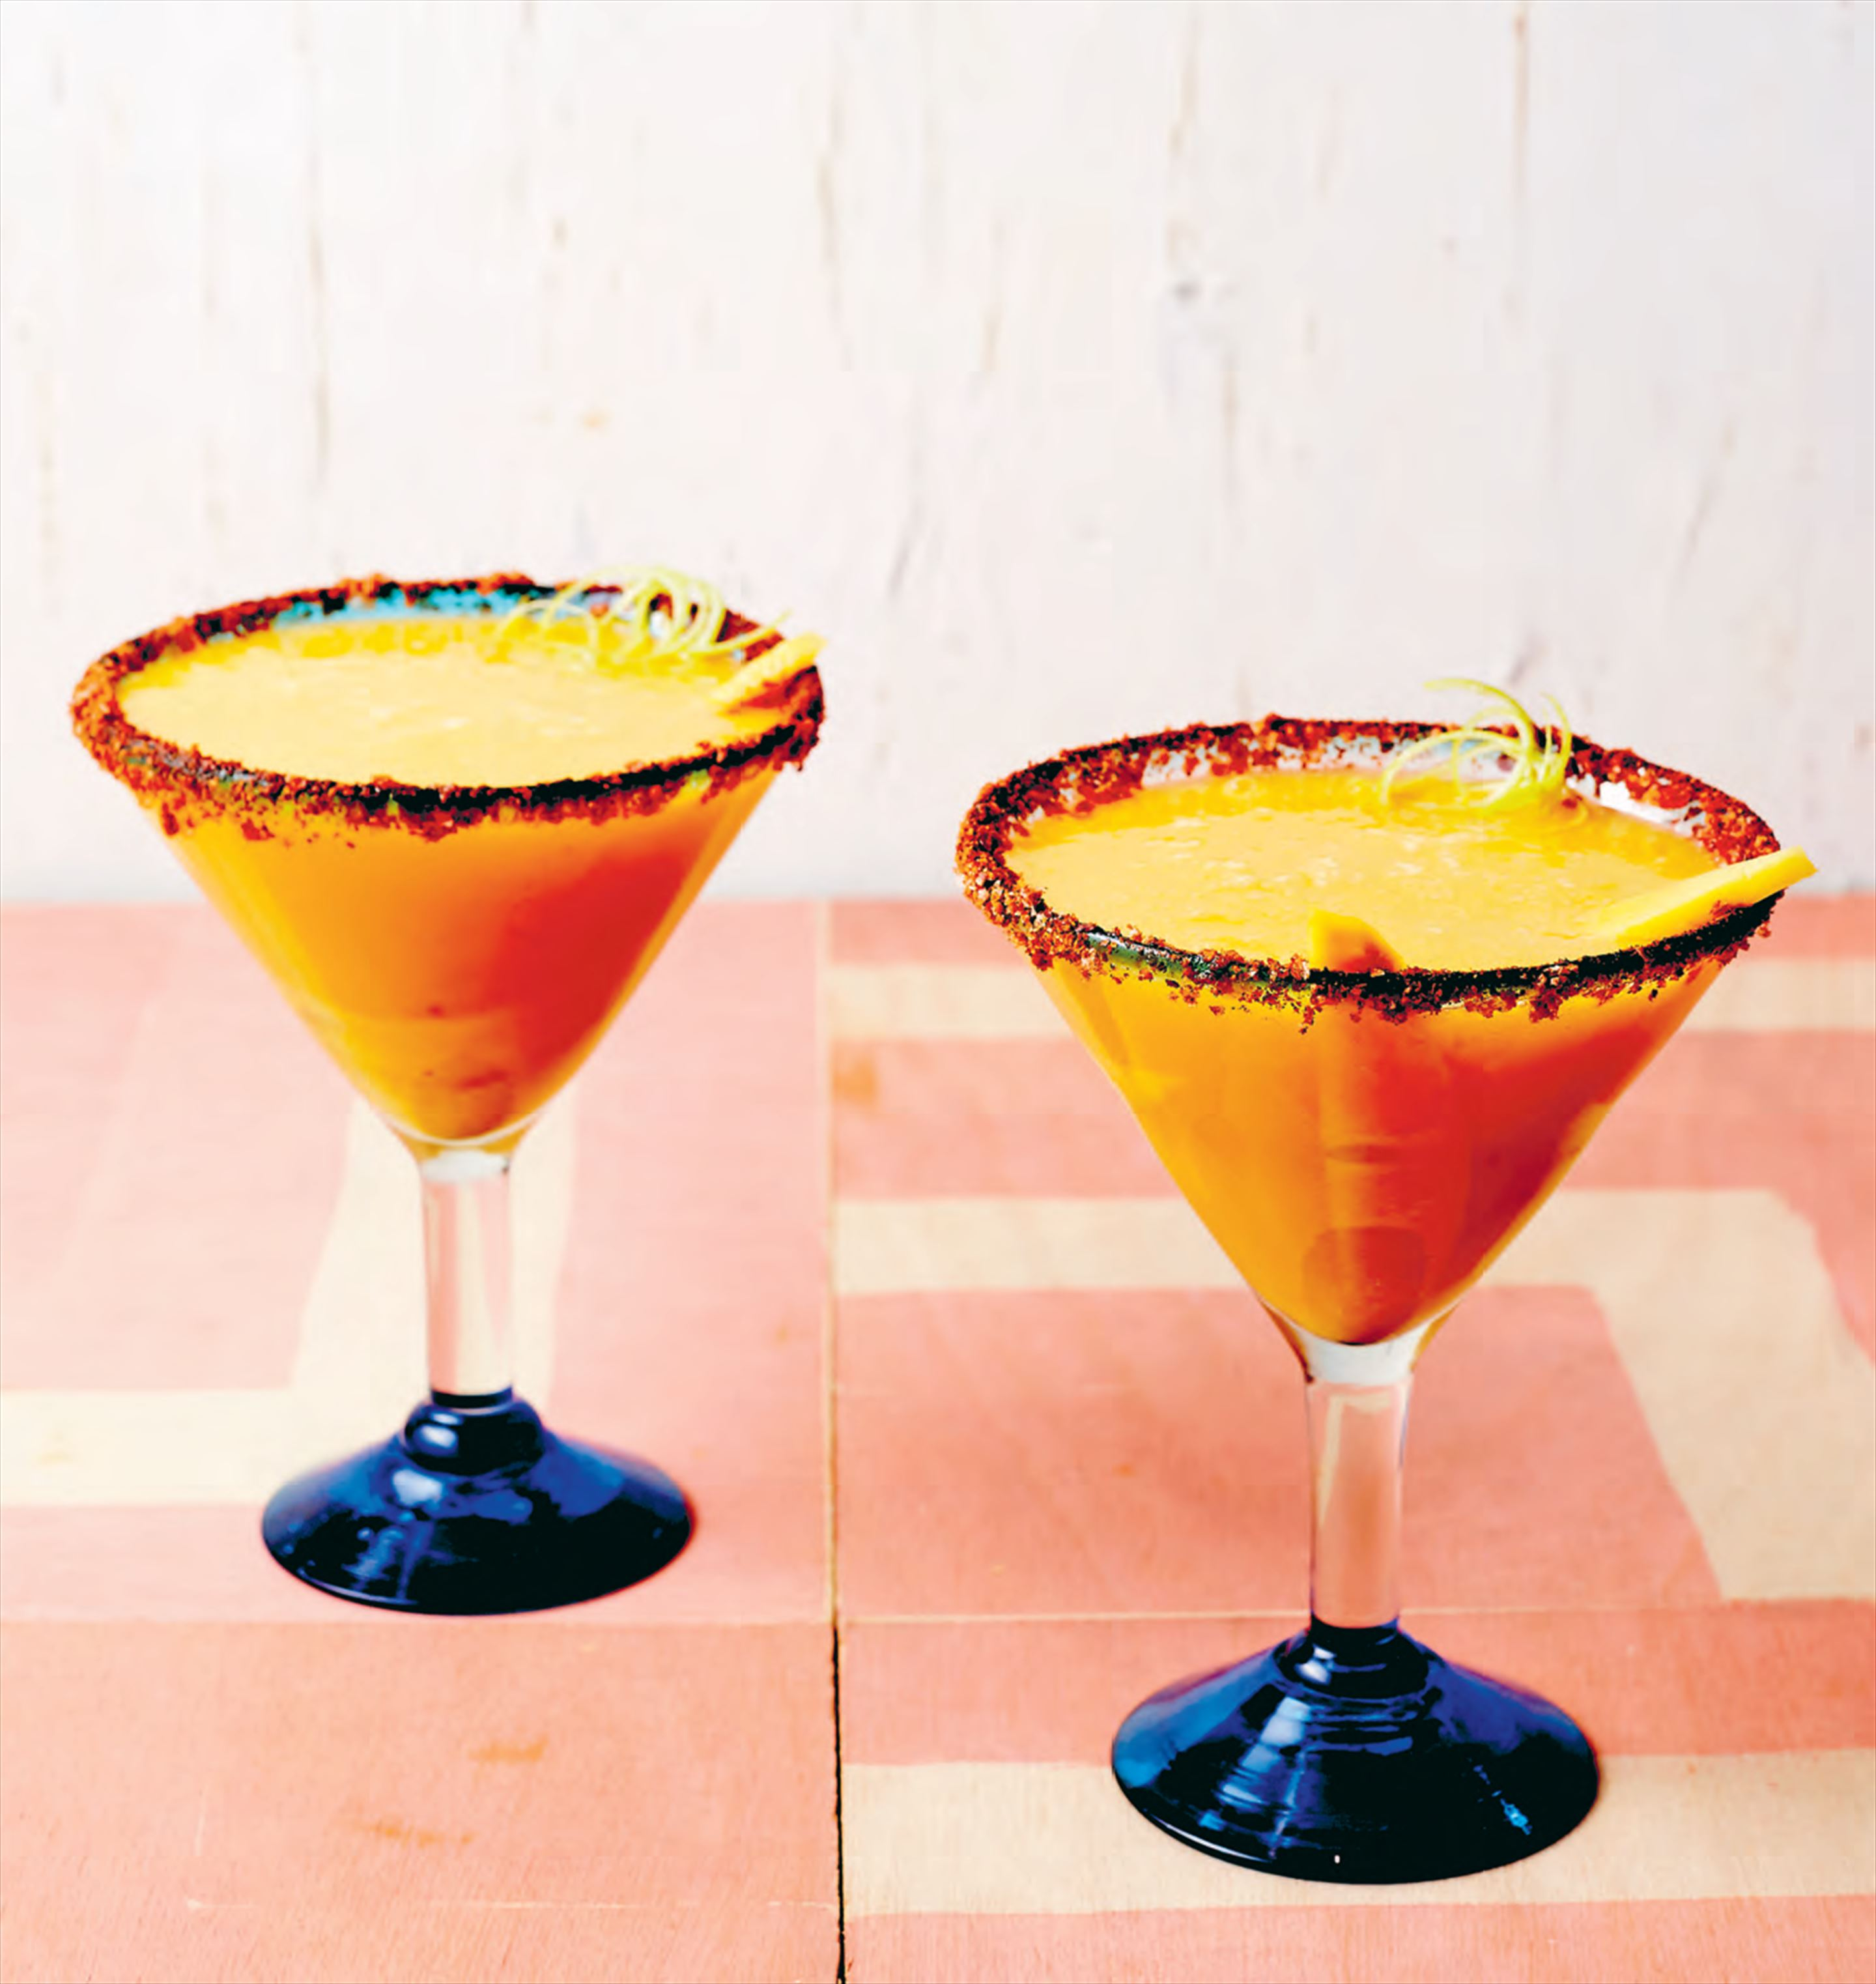 Mango & chilli margarita